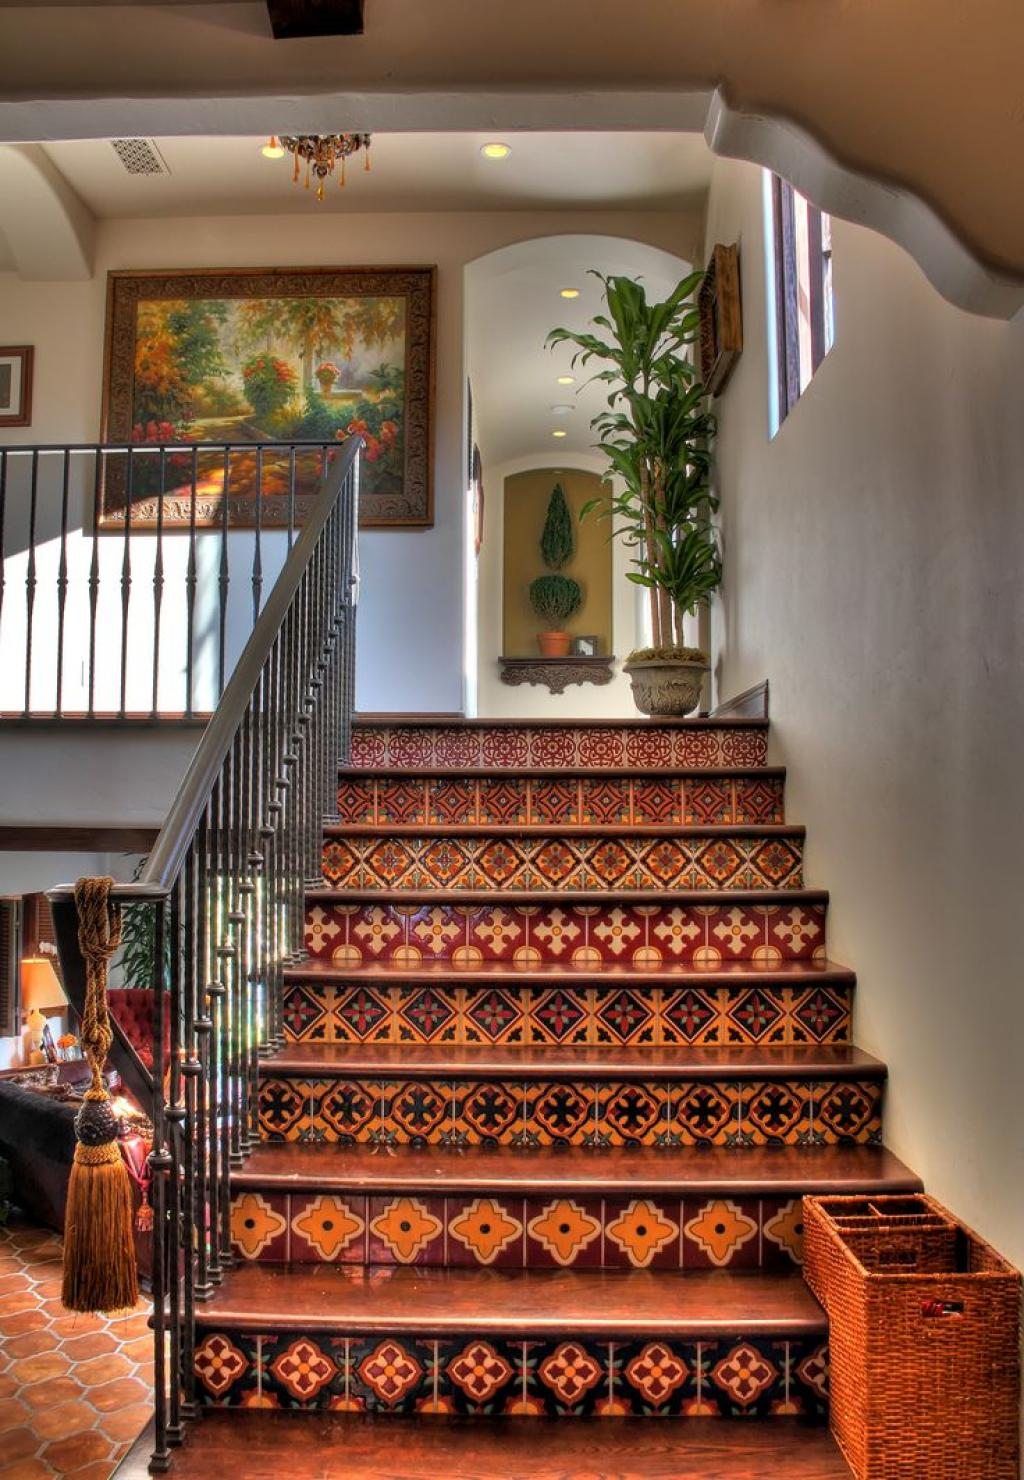 Mediterranean spanish style homes interior stairs decor for Home decorations on sale